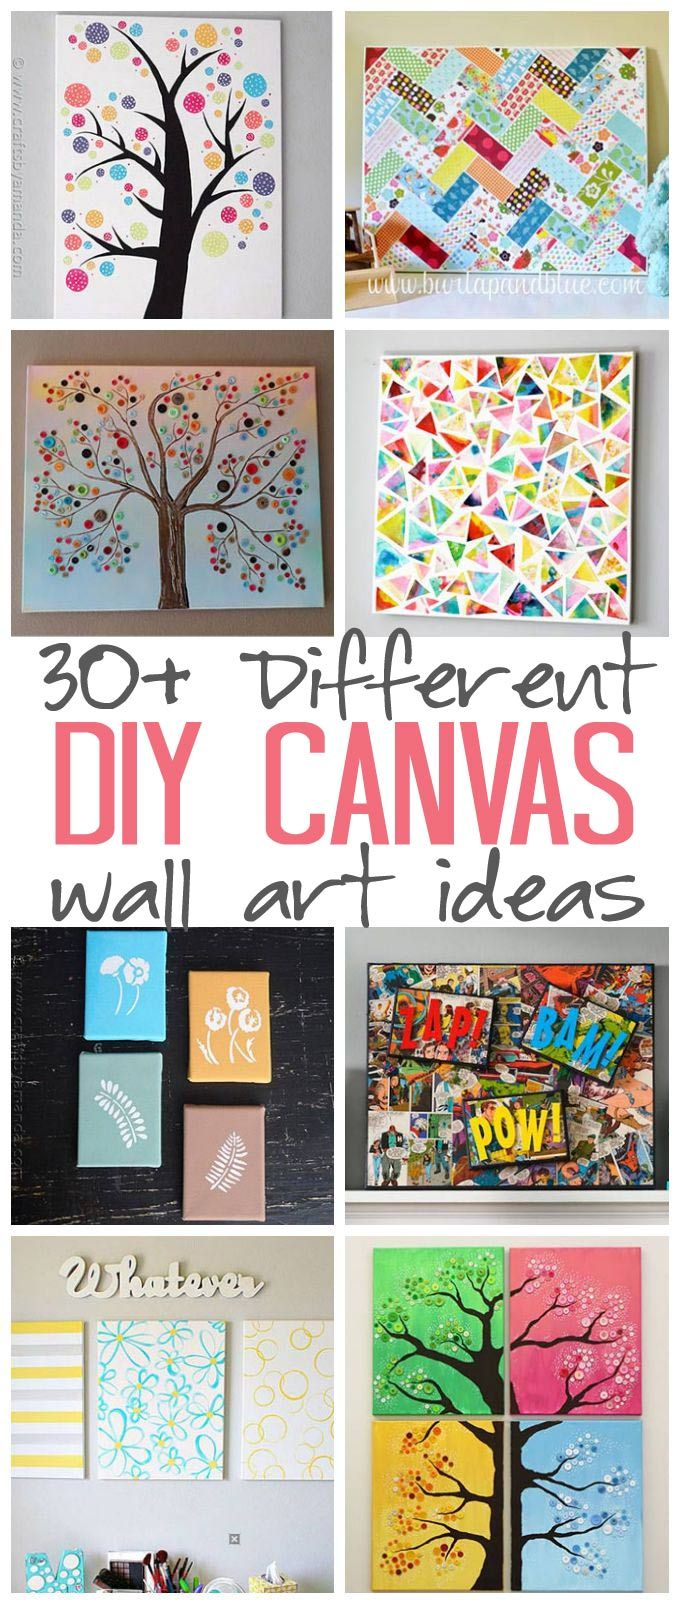 DIY Canvas Wall Art Ideas: 30+ canvas tutorials for adults – great ideas for your home, office, nursery and craft room!